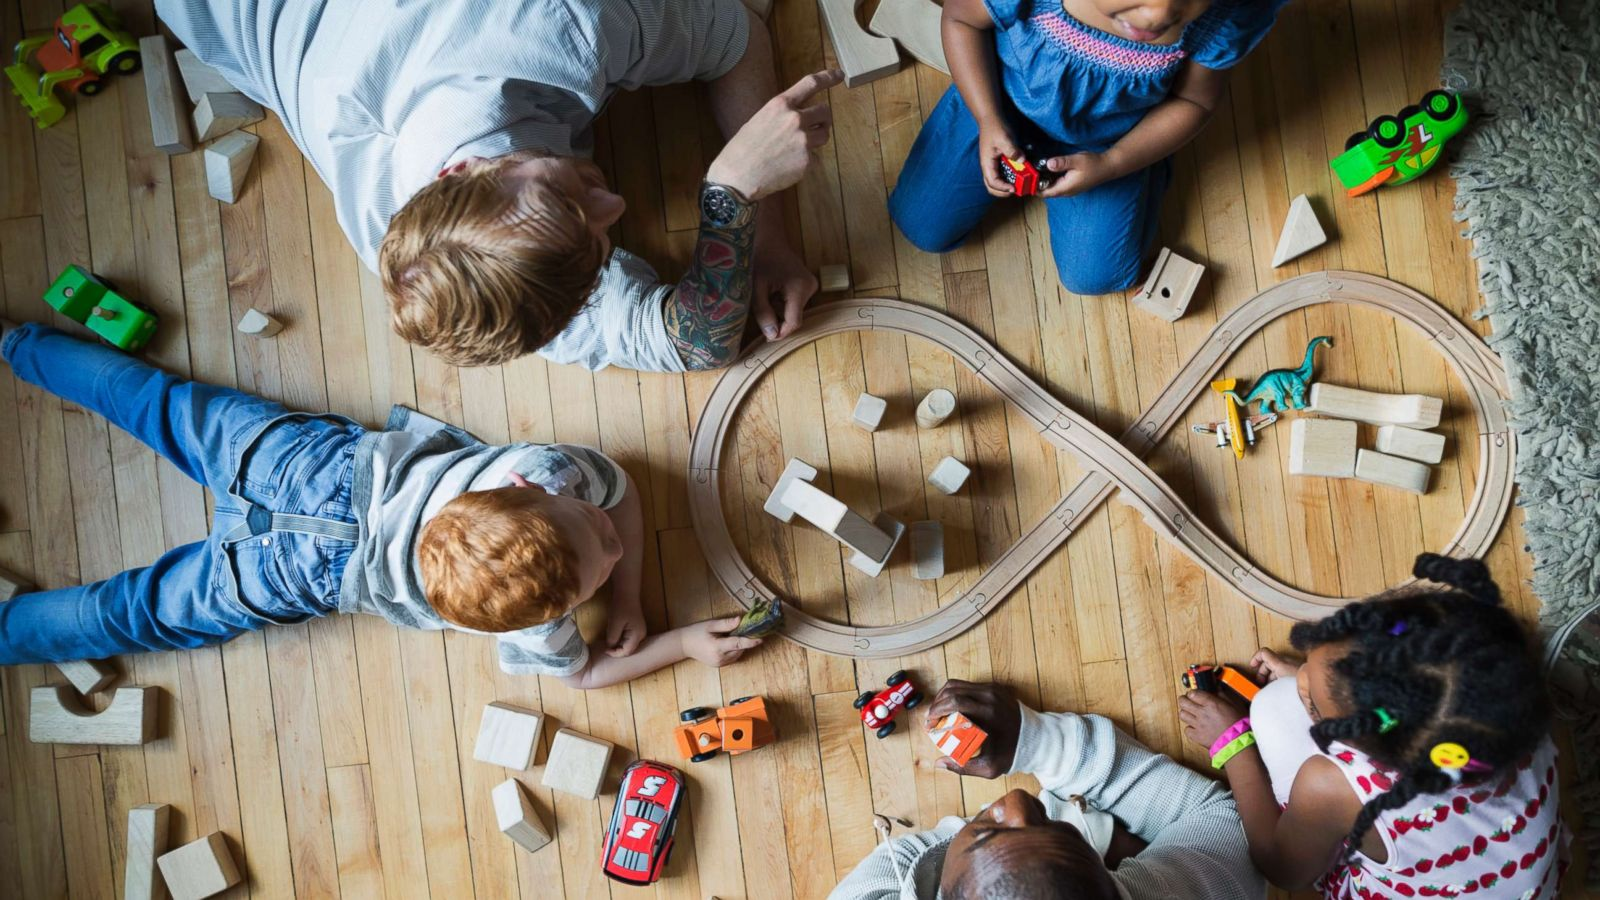 Holiday shopping: The best toys for kids make use of their imaginations,  not a screen - ABC News